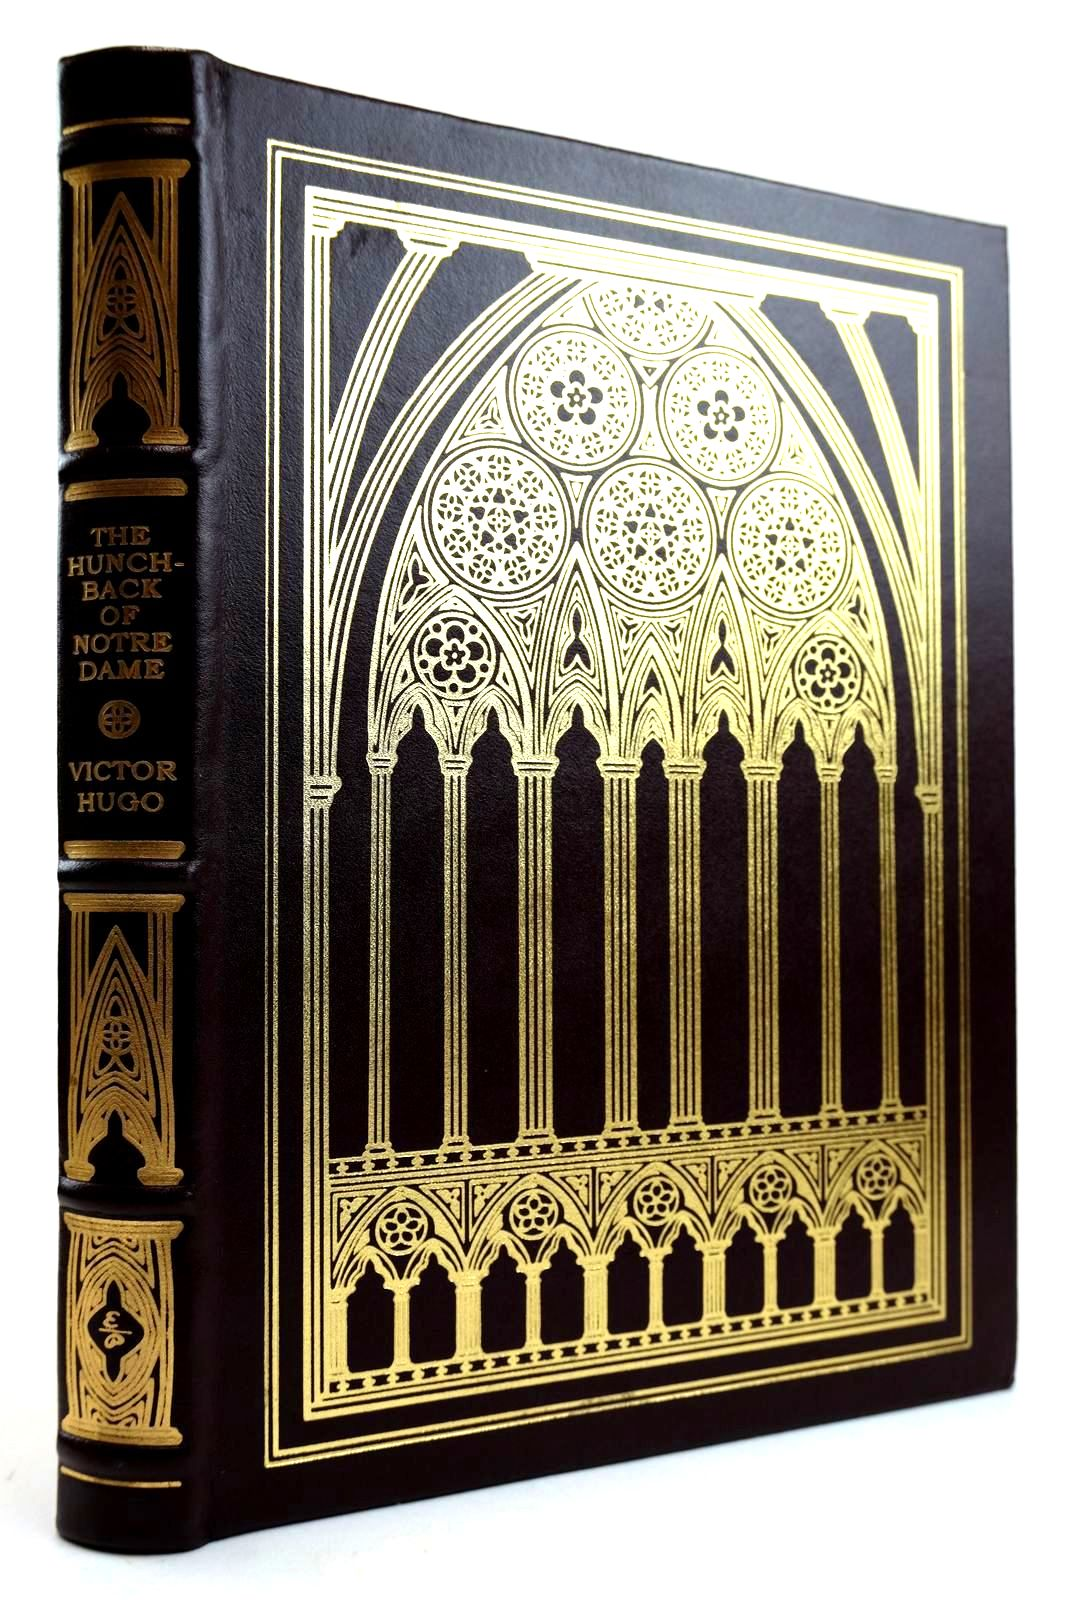 Photo of THE HUNCHBACK OF NOTRE DAME written by Hugo, Victor illustrated by Lamotte, Bernard published by Easton Press (STOCK CODE: 2132009)  for sale by Stella & Rose's Books